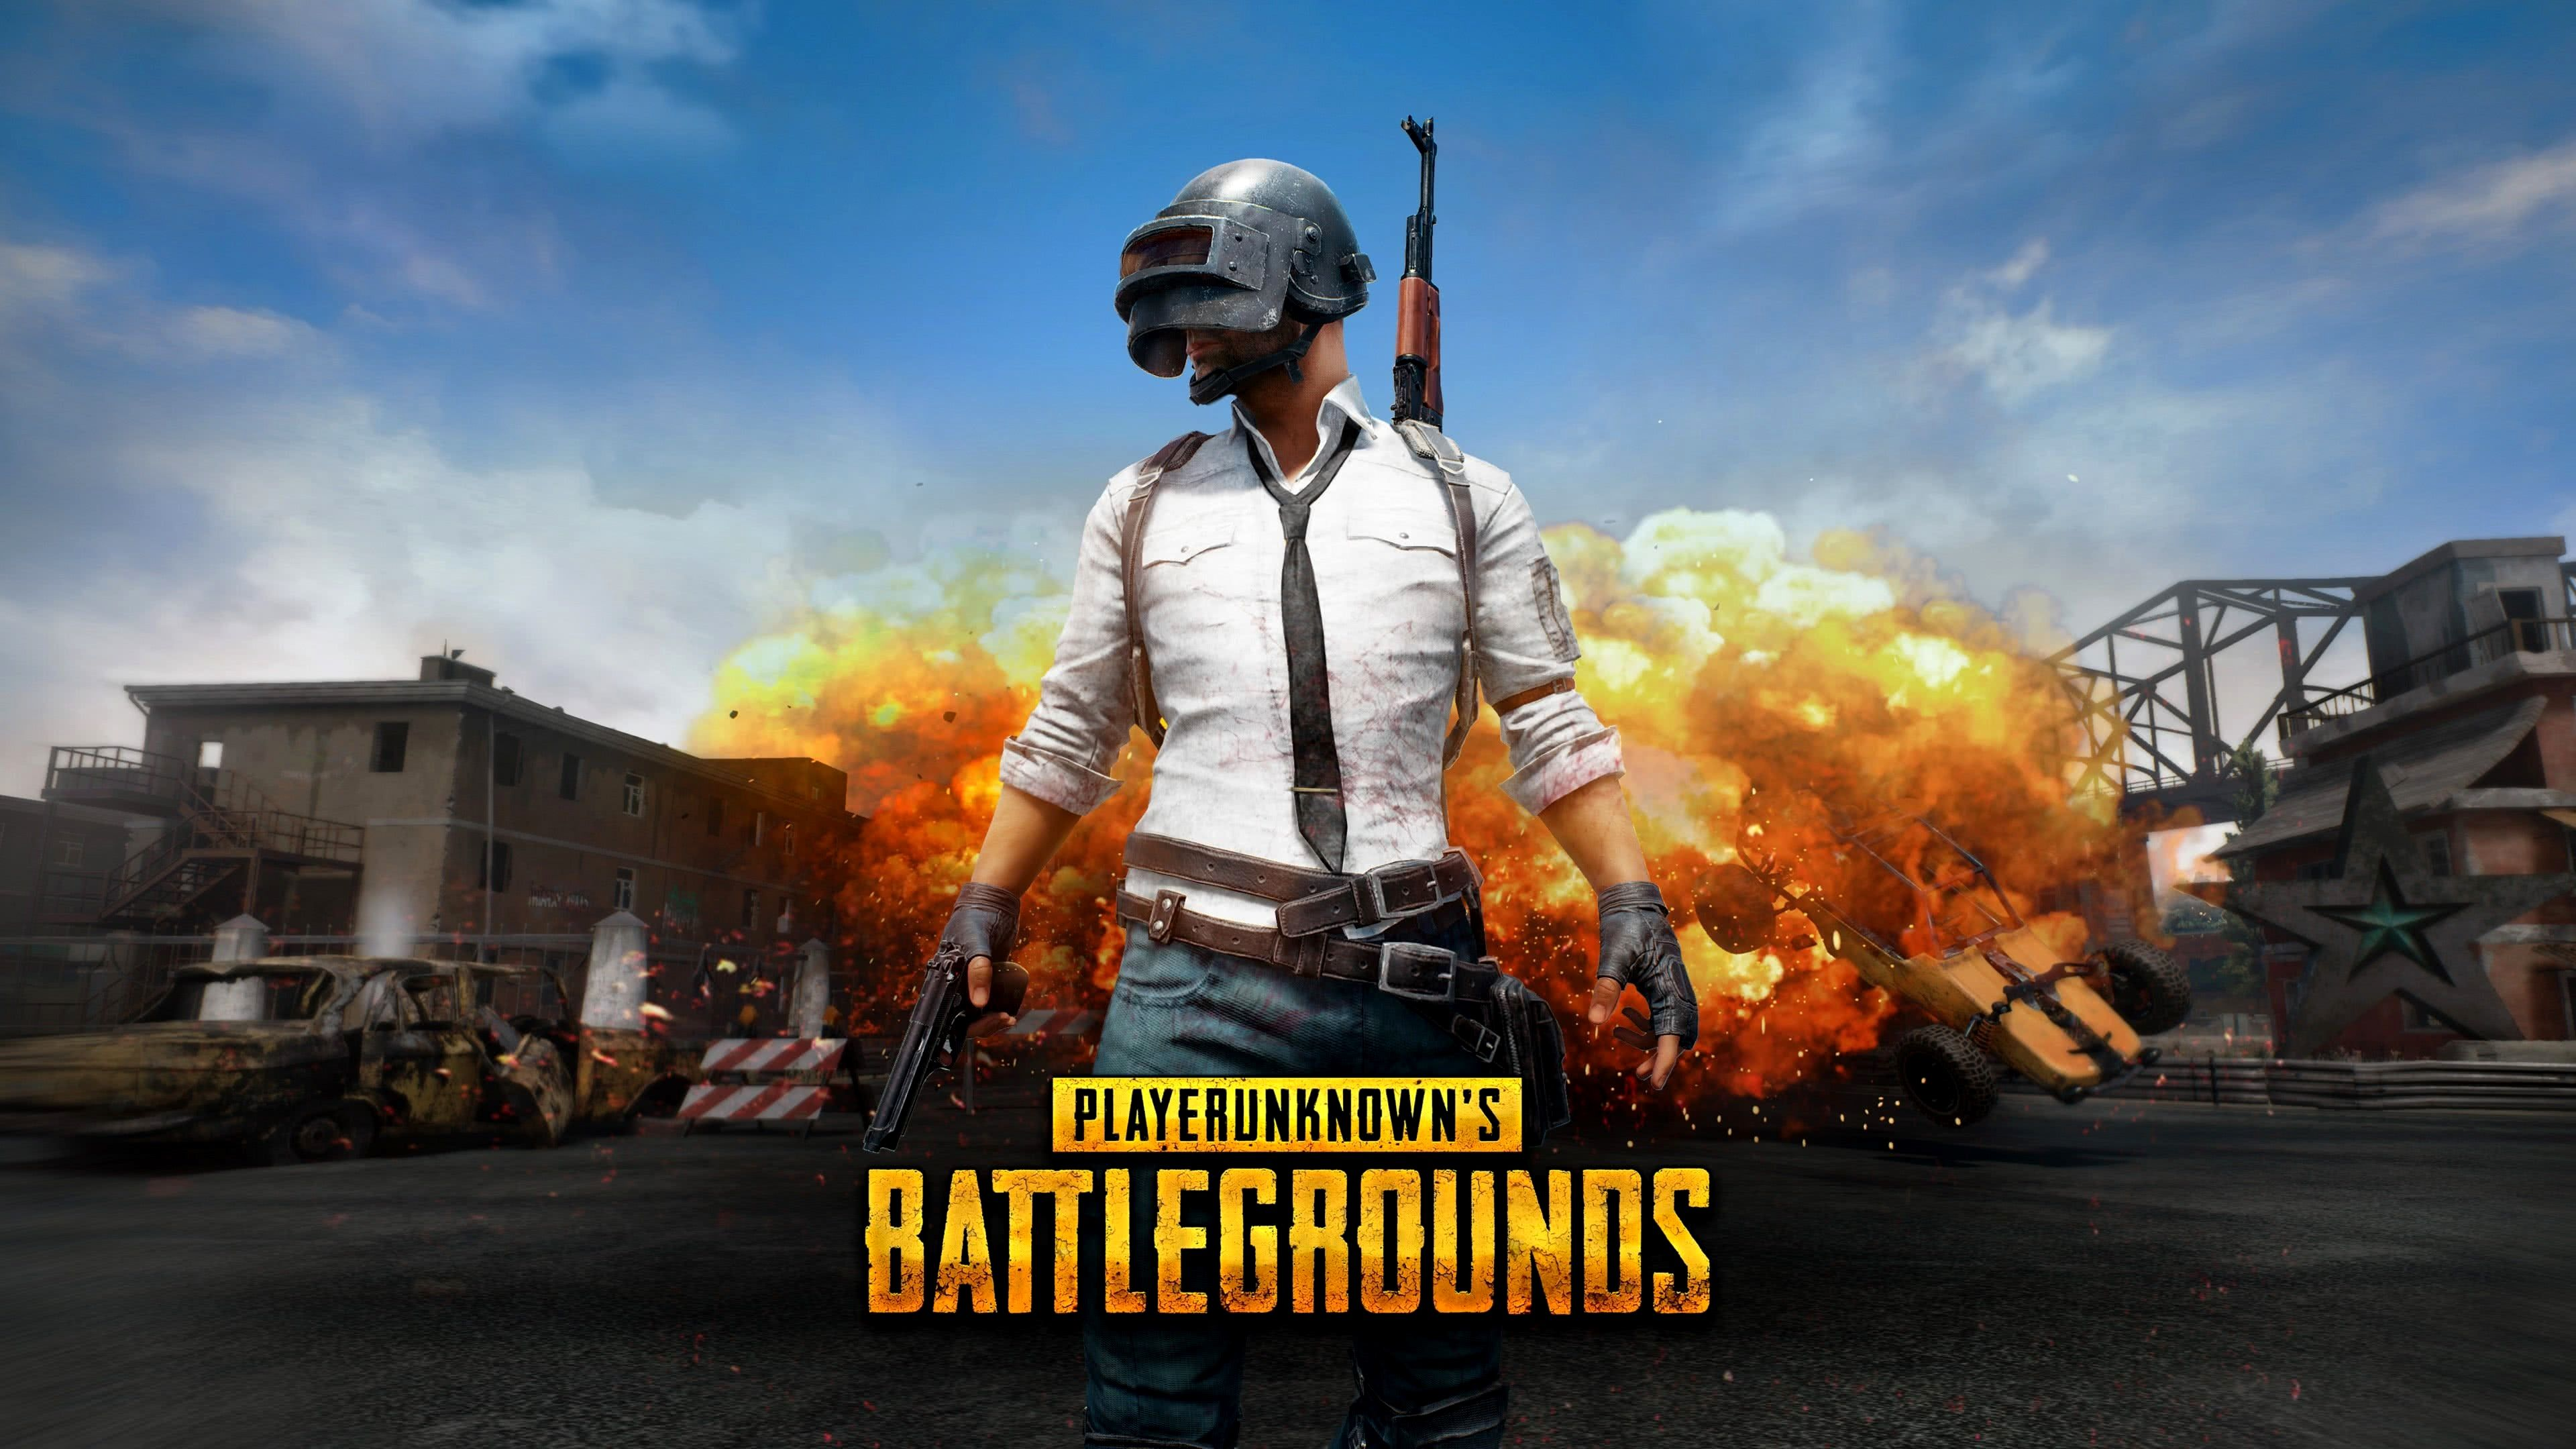 4k Gaming Wallpaper For Pc 1920x1080 Ideas Battle Royale Game Player Unknown Download Wallpapers For Pc